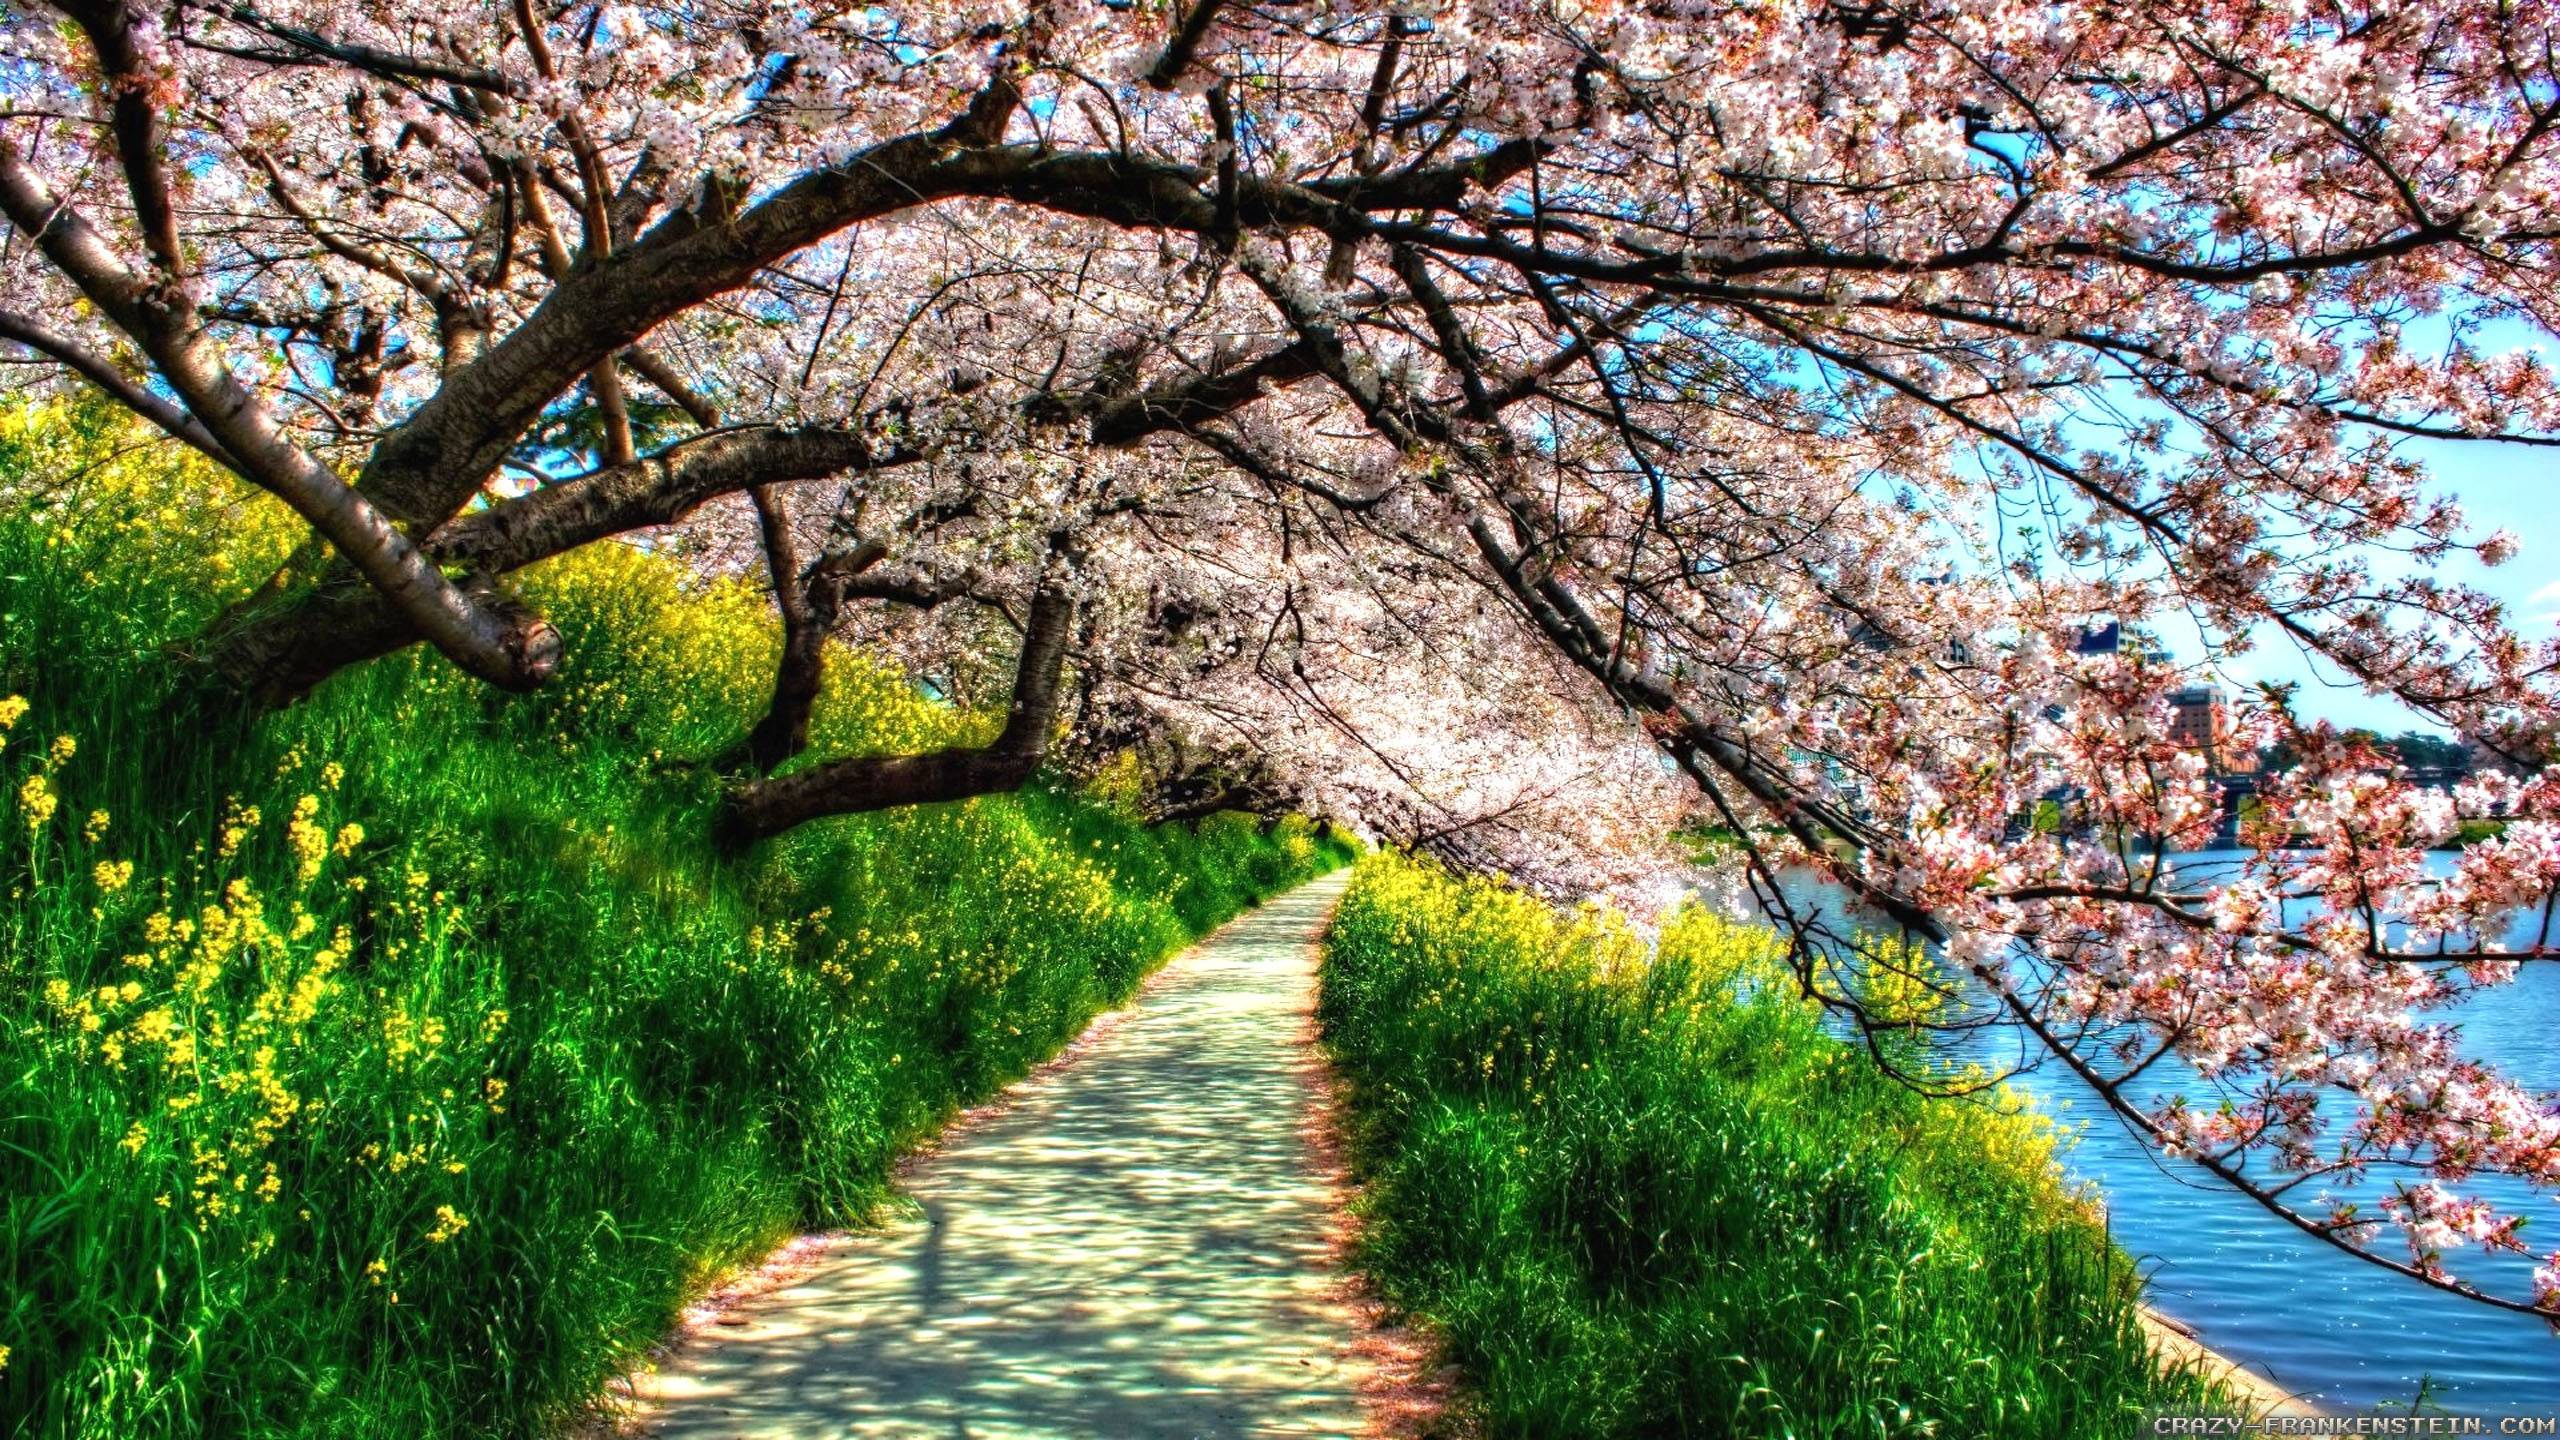 Spring Nature Wallpapers   Top Spring Nature Backgrounds 2560x1440